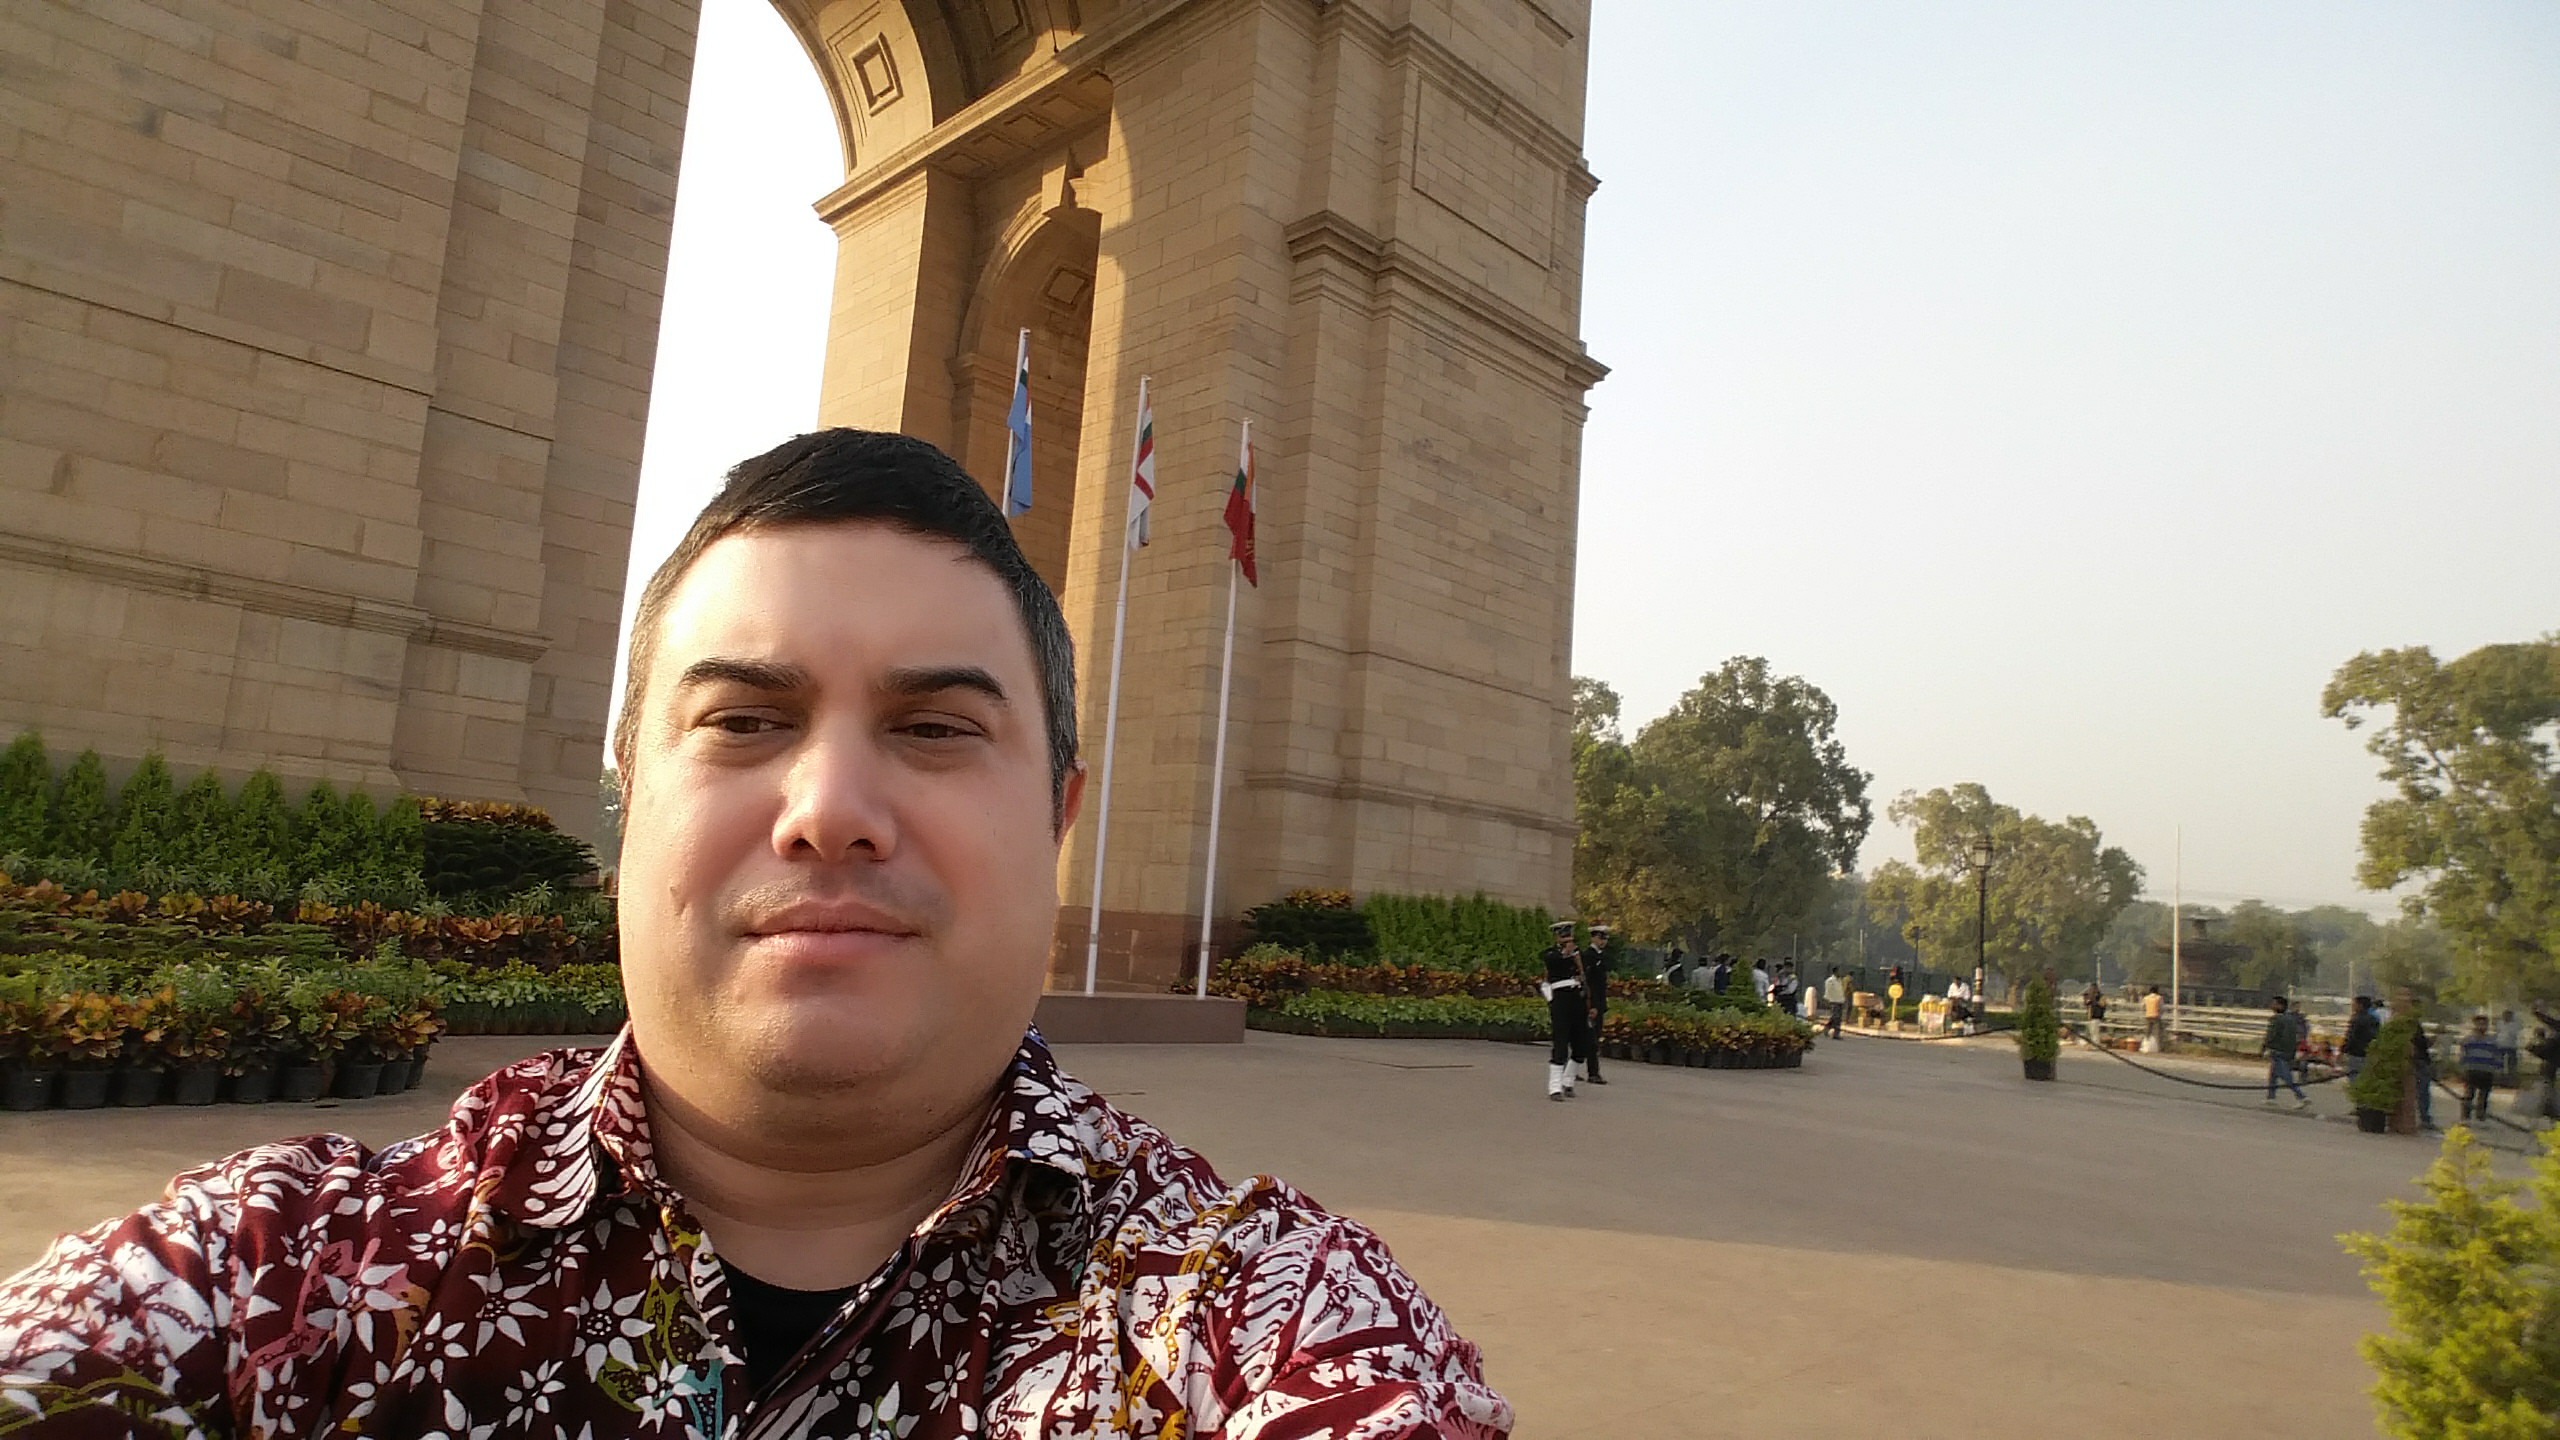 Kevin at the India Gate, New Dehli, India.